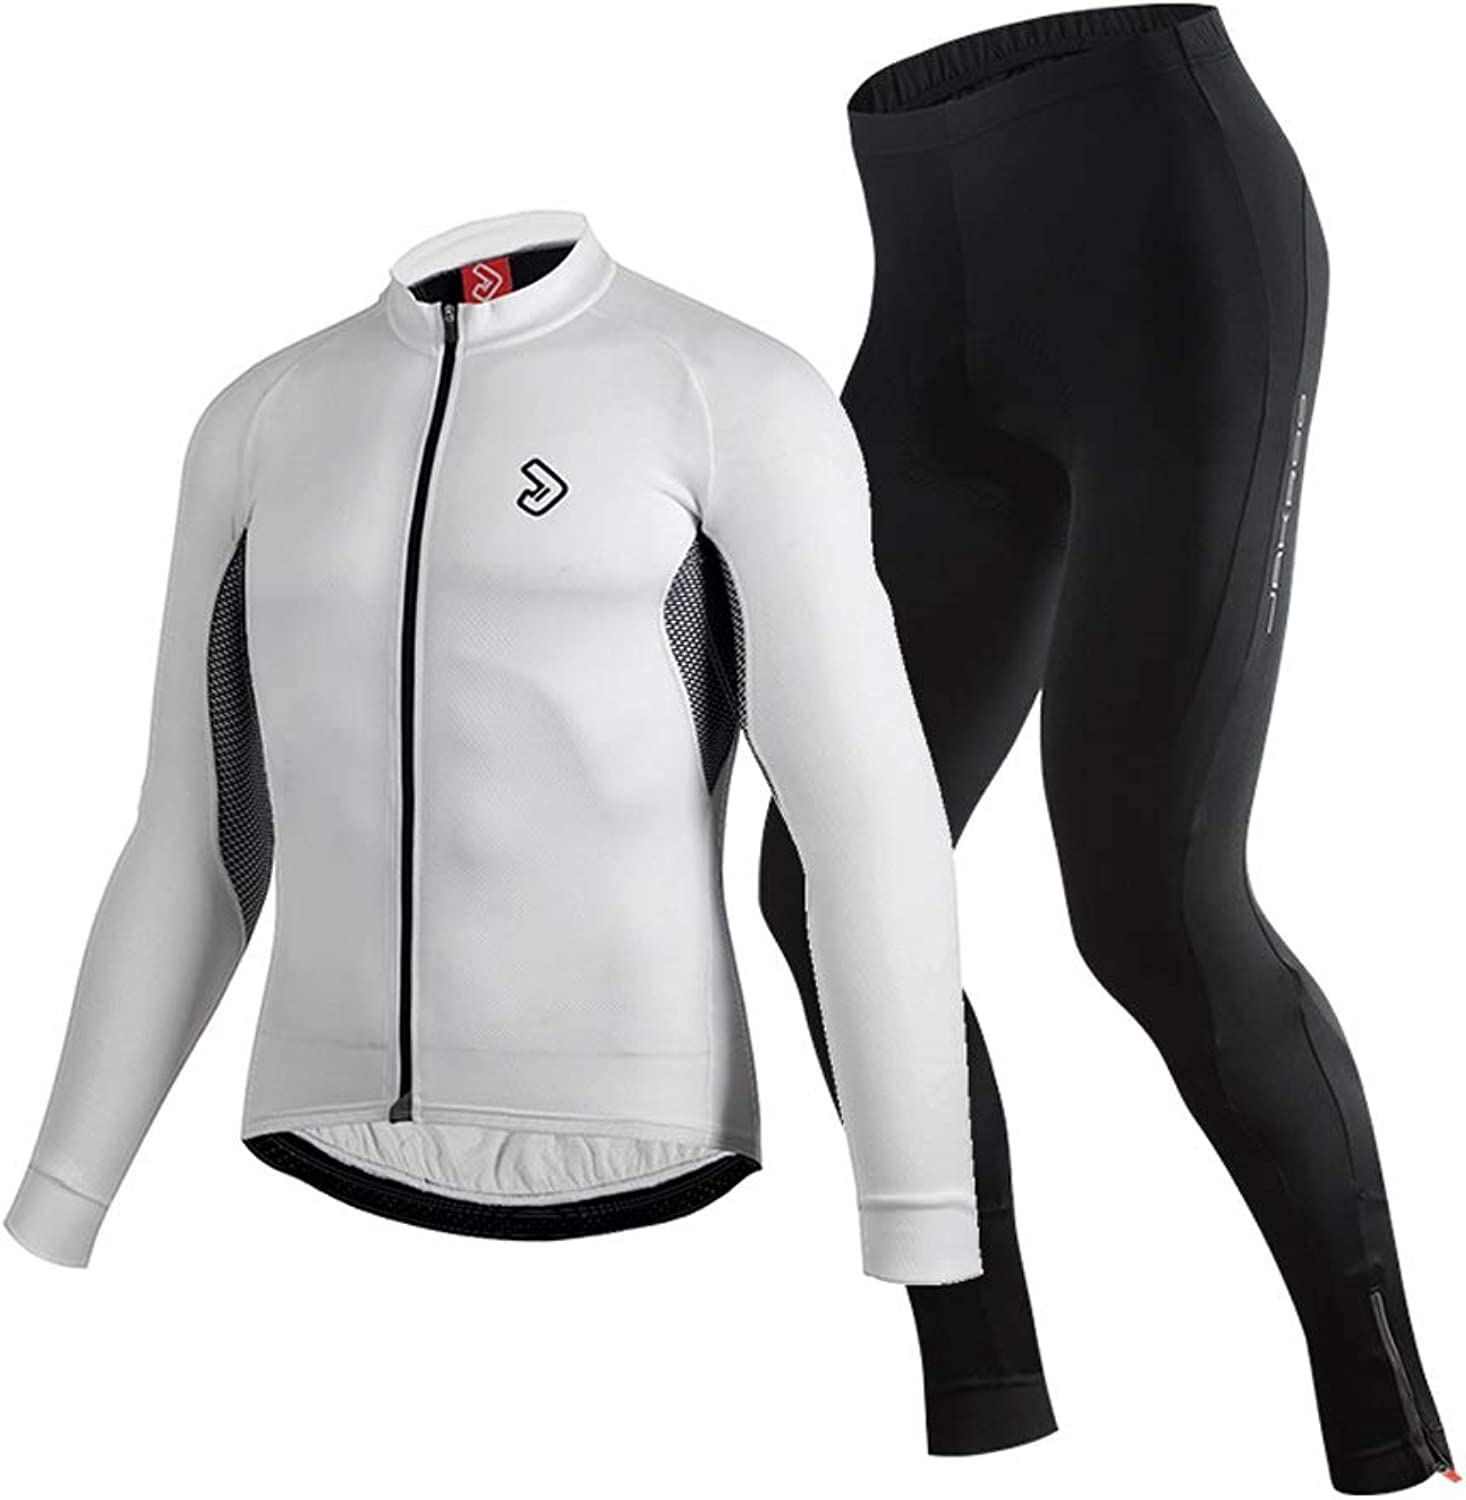 LIUX Cycling Suit Spring and Summer LongSleeved Jersey Suit 3D Stereo Version Type MoistureAbsorbing Breathable Soft Lightweight Men and Women Breathable Wicking Mountain Road Bike